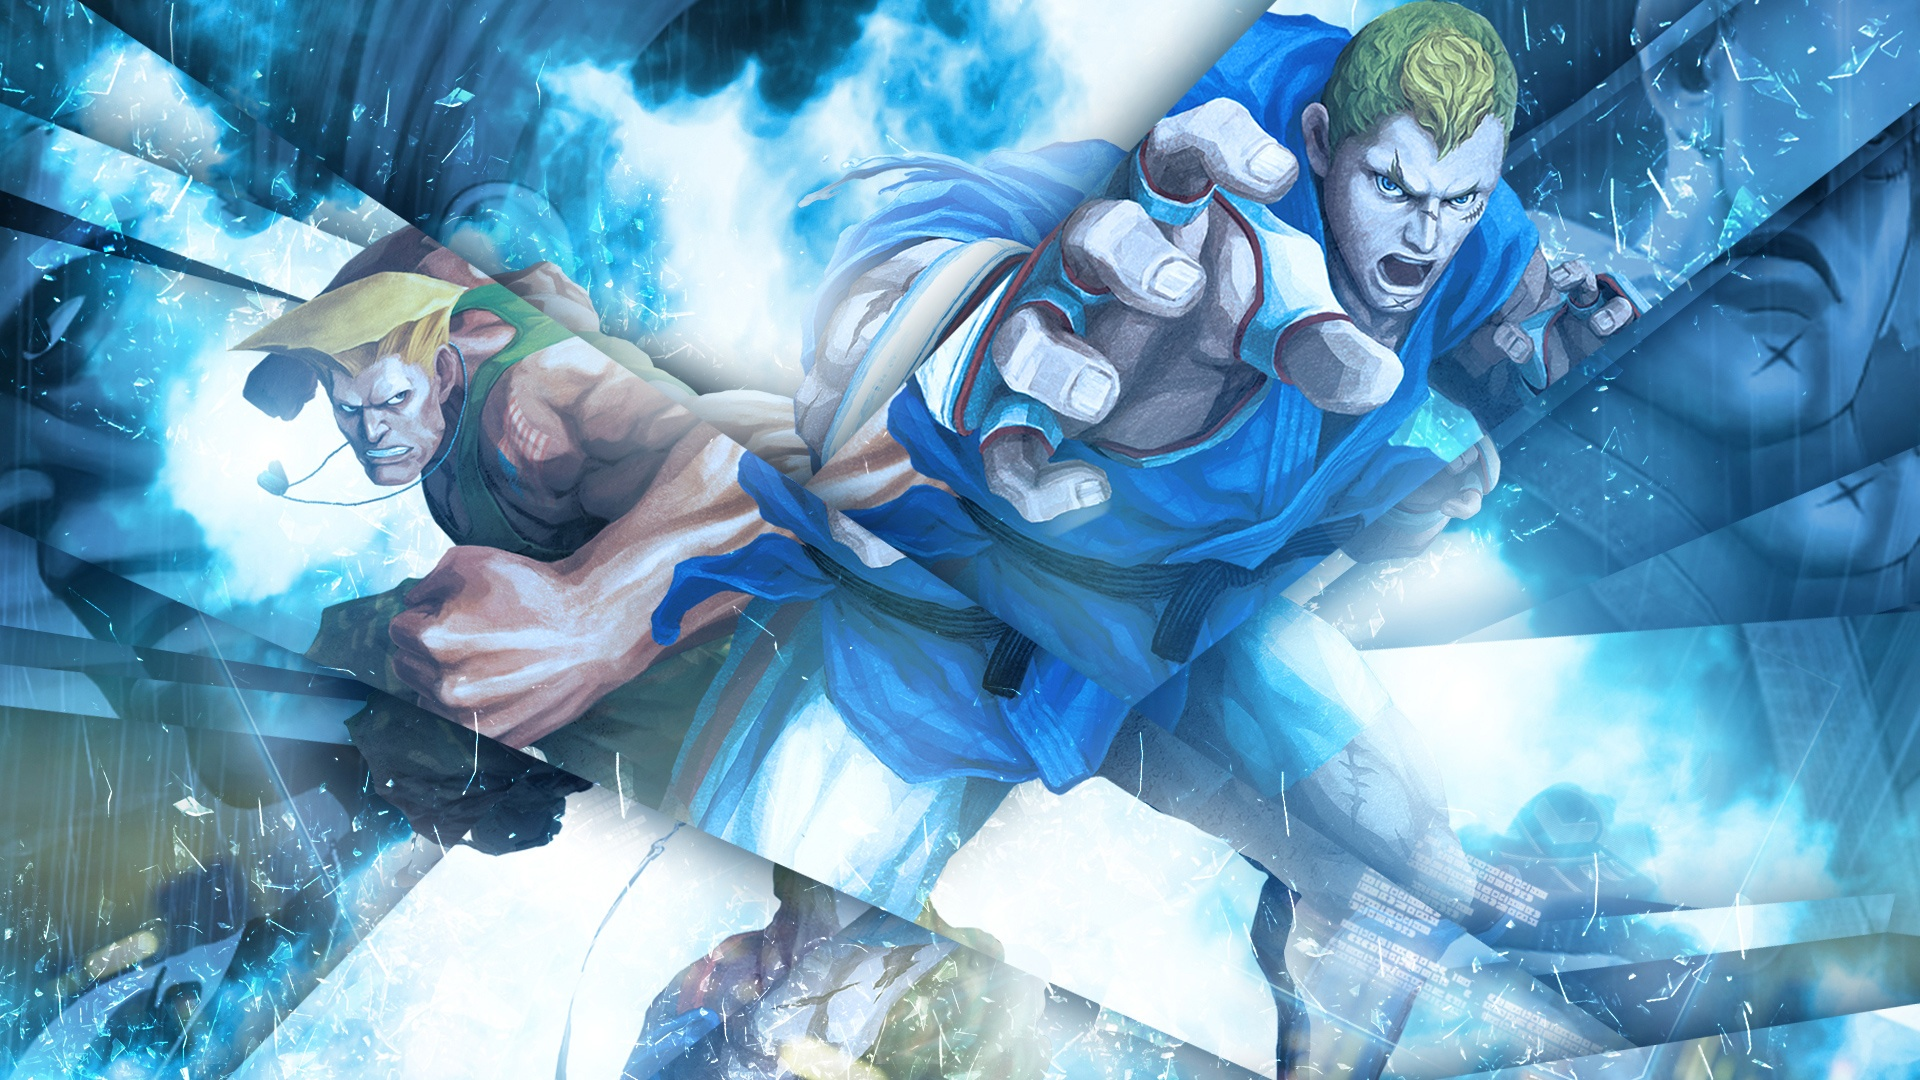 Street Fighter X Tekken Abel 1920x1080 Download Hd Wallpaper Wallpapertip